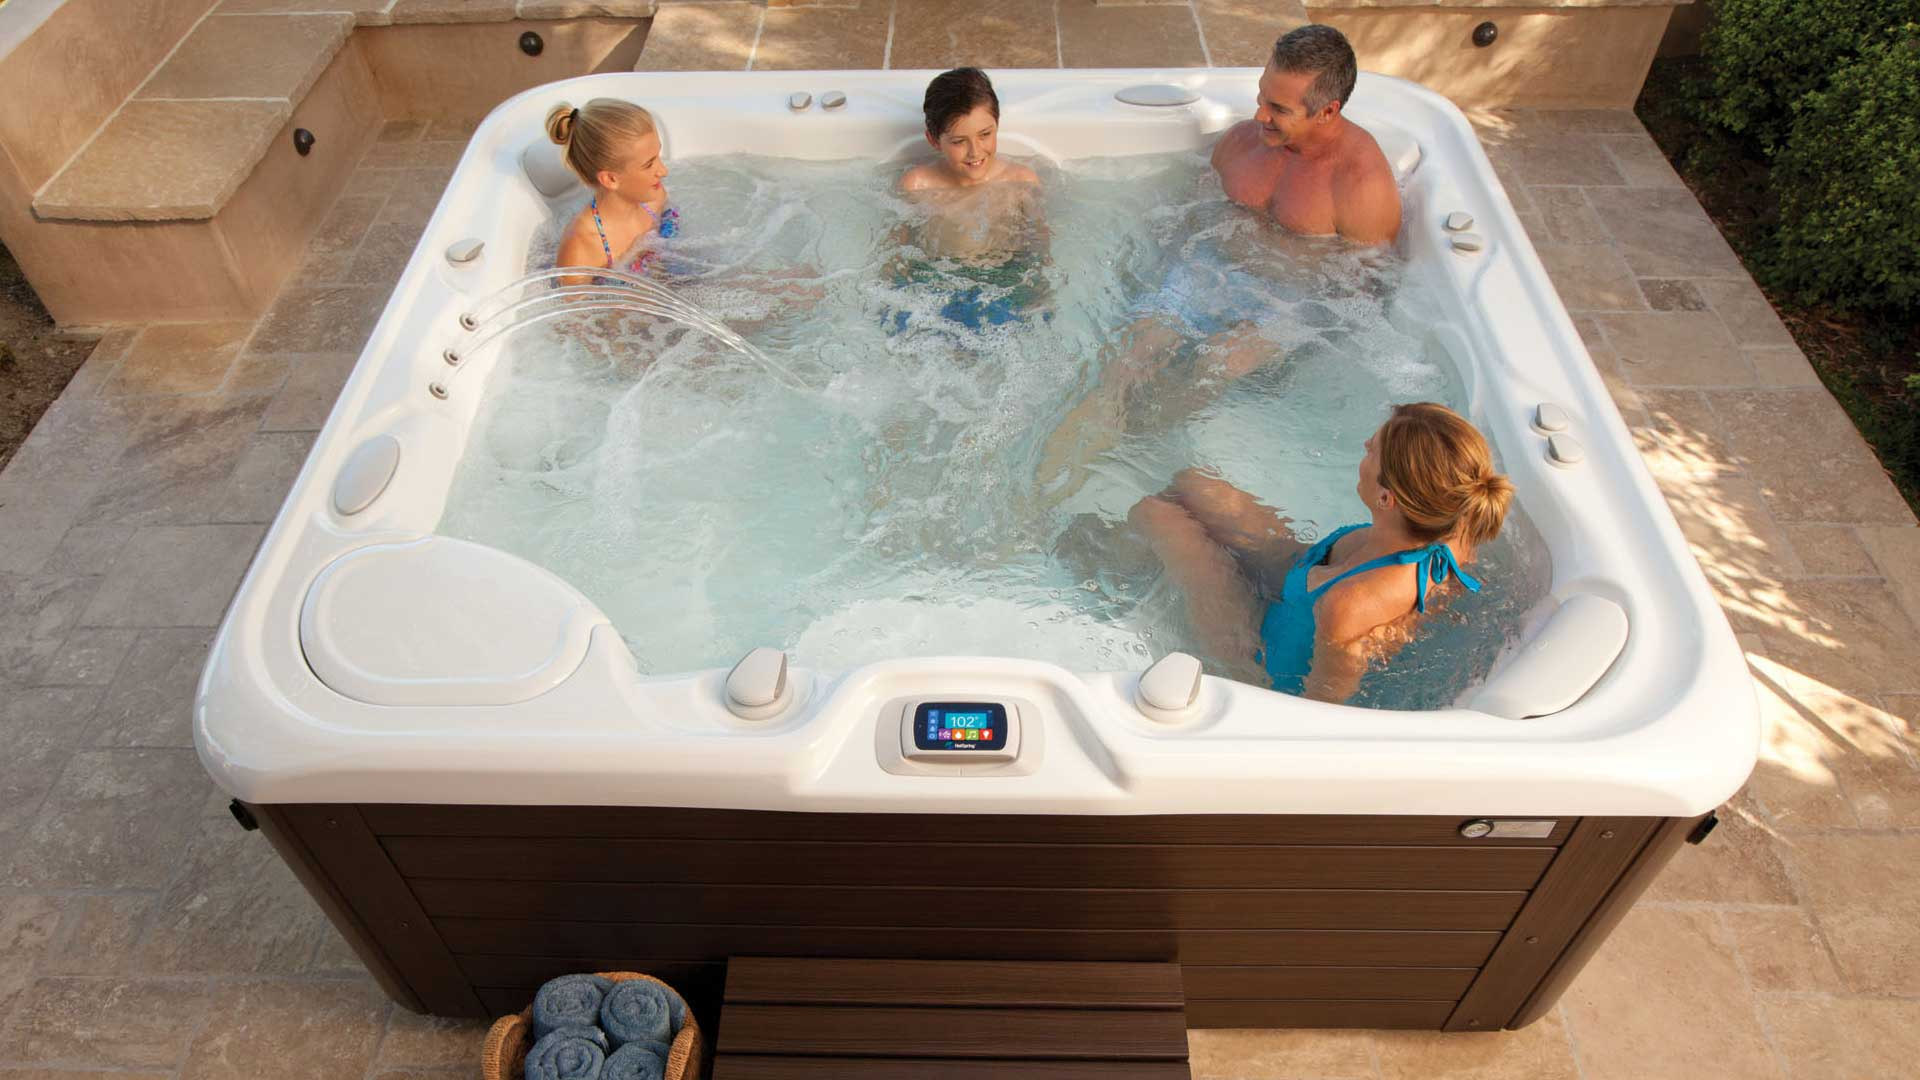 How to Turn your Hot Tub into a Cool Pool - Olympic Hot Tub